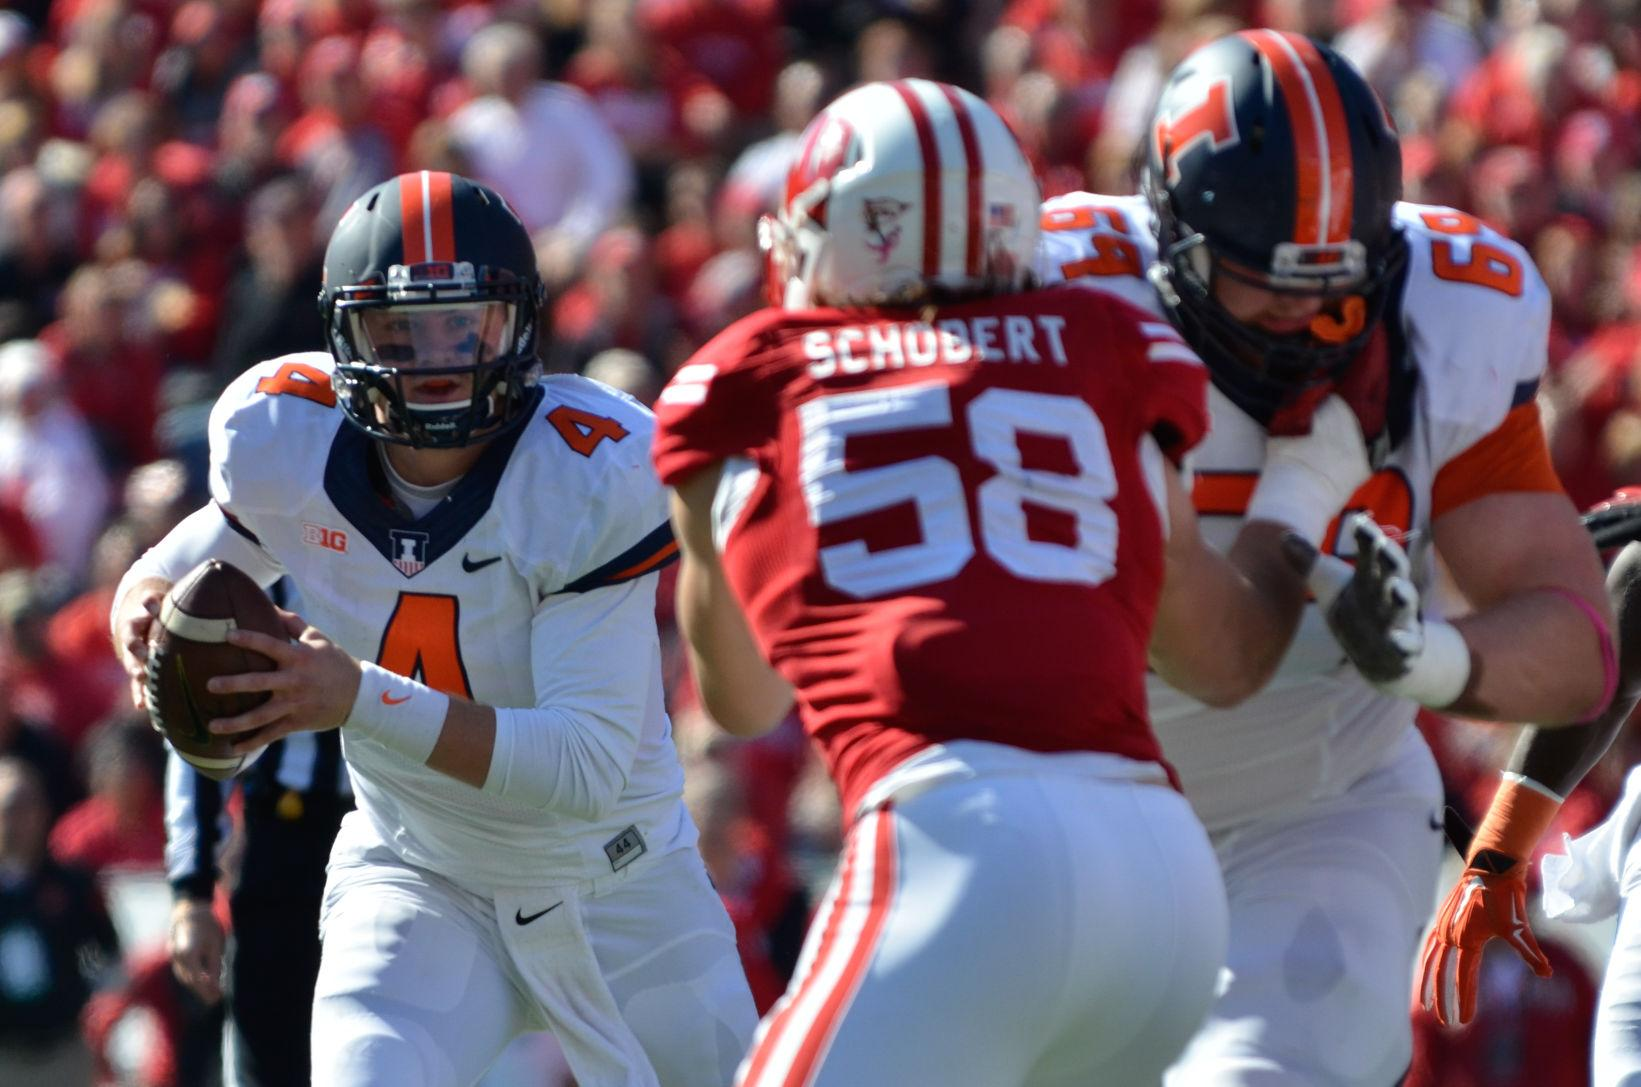 Illinois' Reilly O'Toole runs the ball during the game against Wisconsin at Camp Randall Stadium in Madison, Wis. on Oct. 11. The Illini lost 38-28.